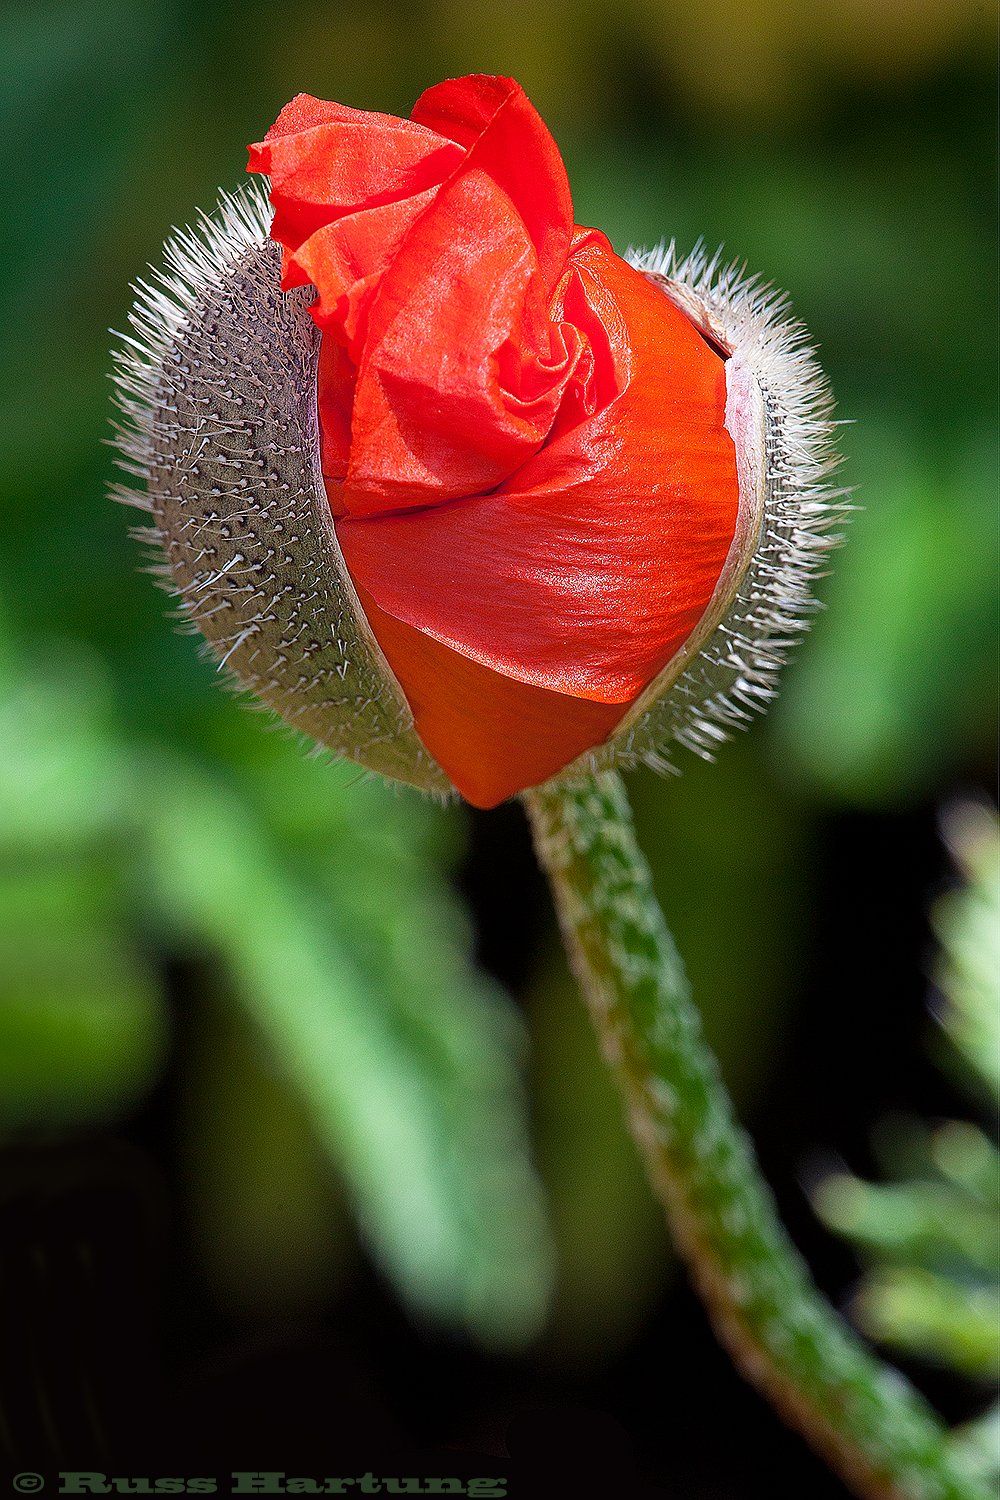 Poppy blossom just breaking out of it's bud.